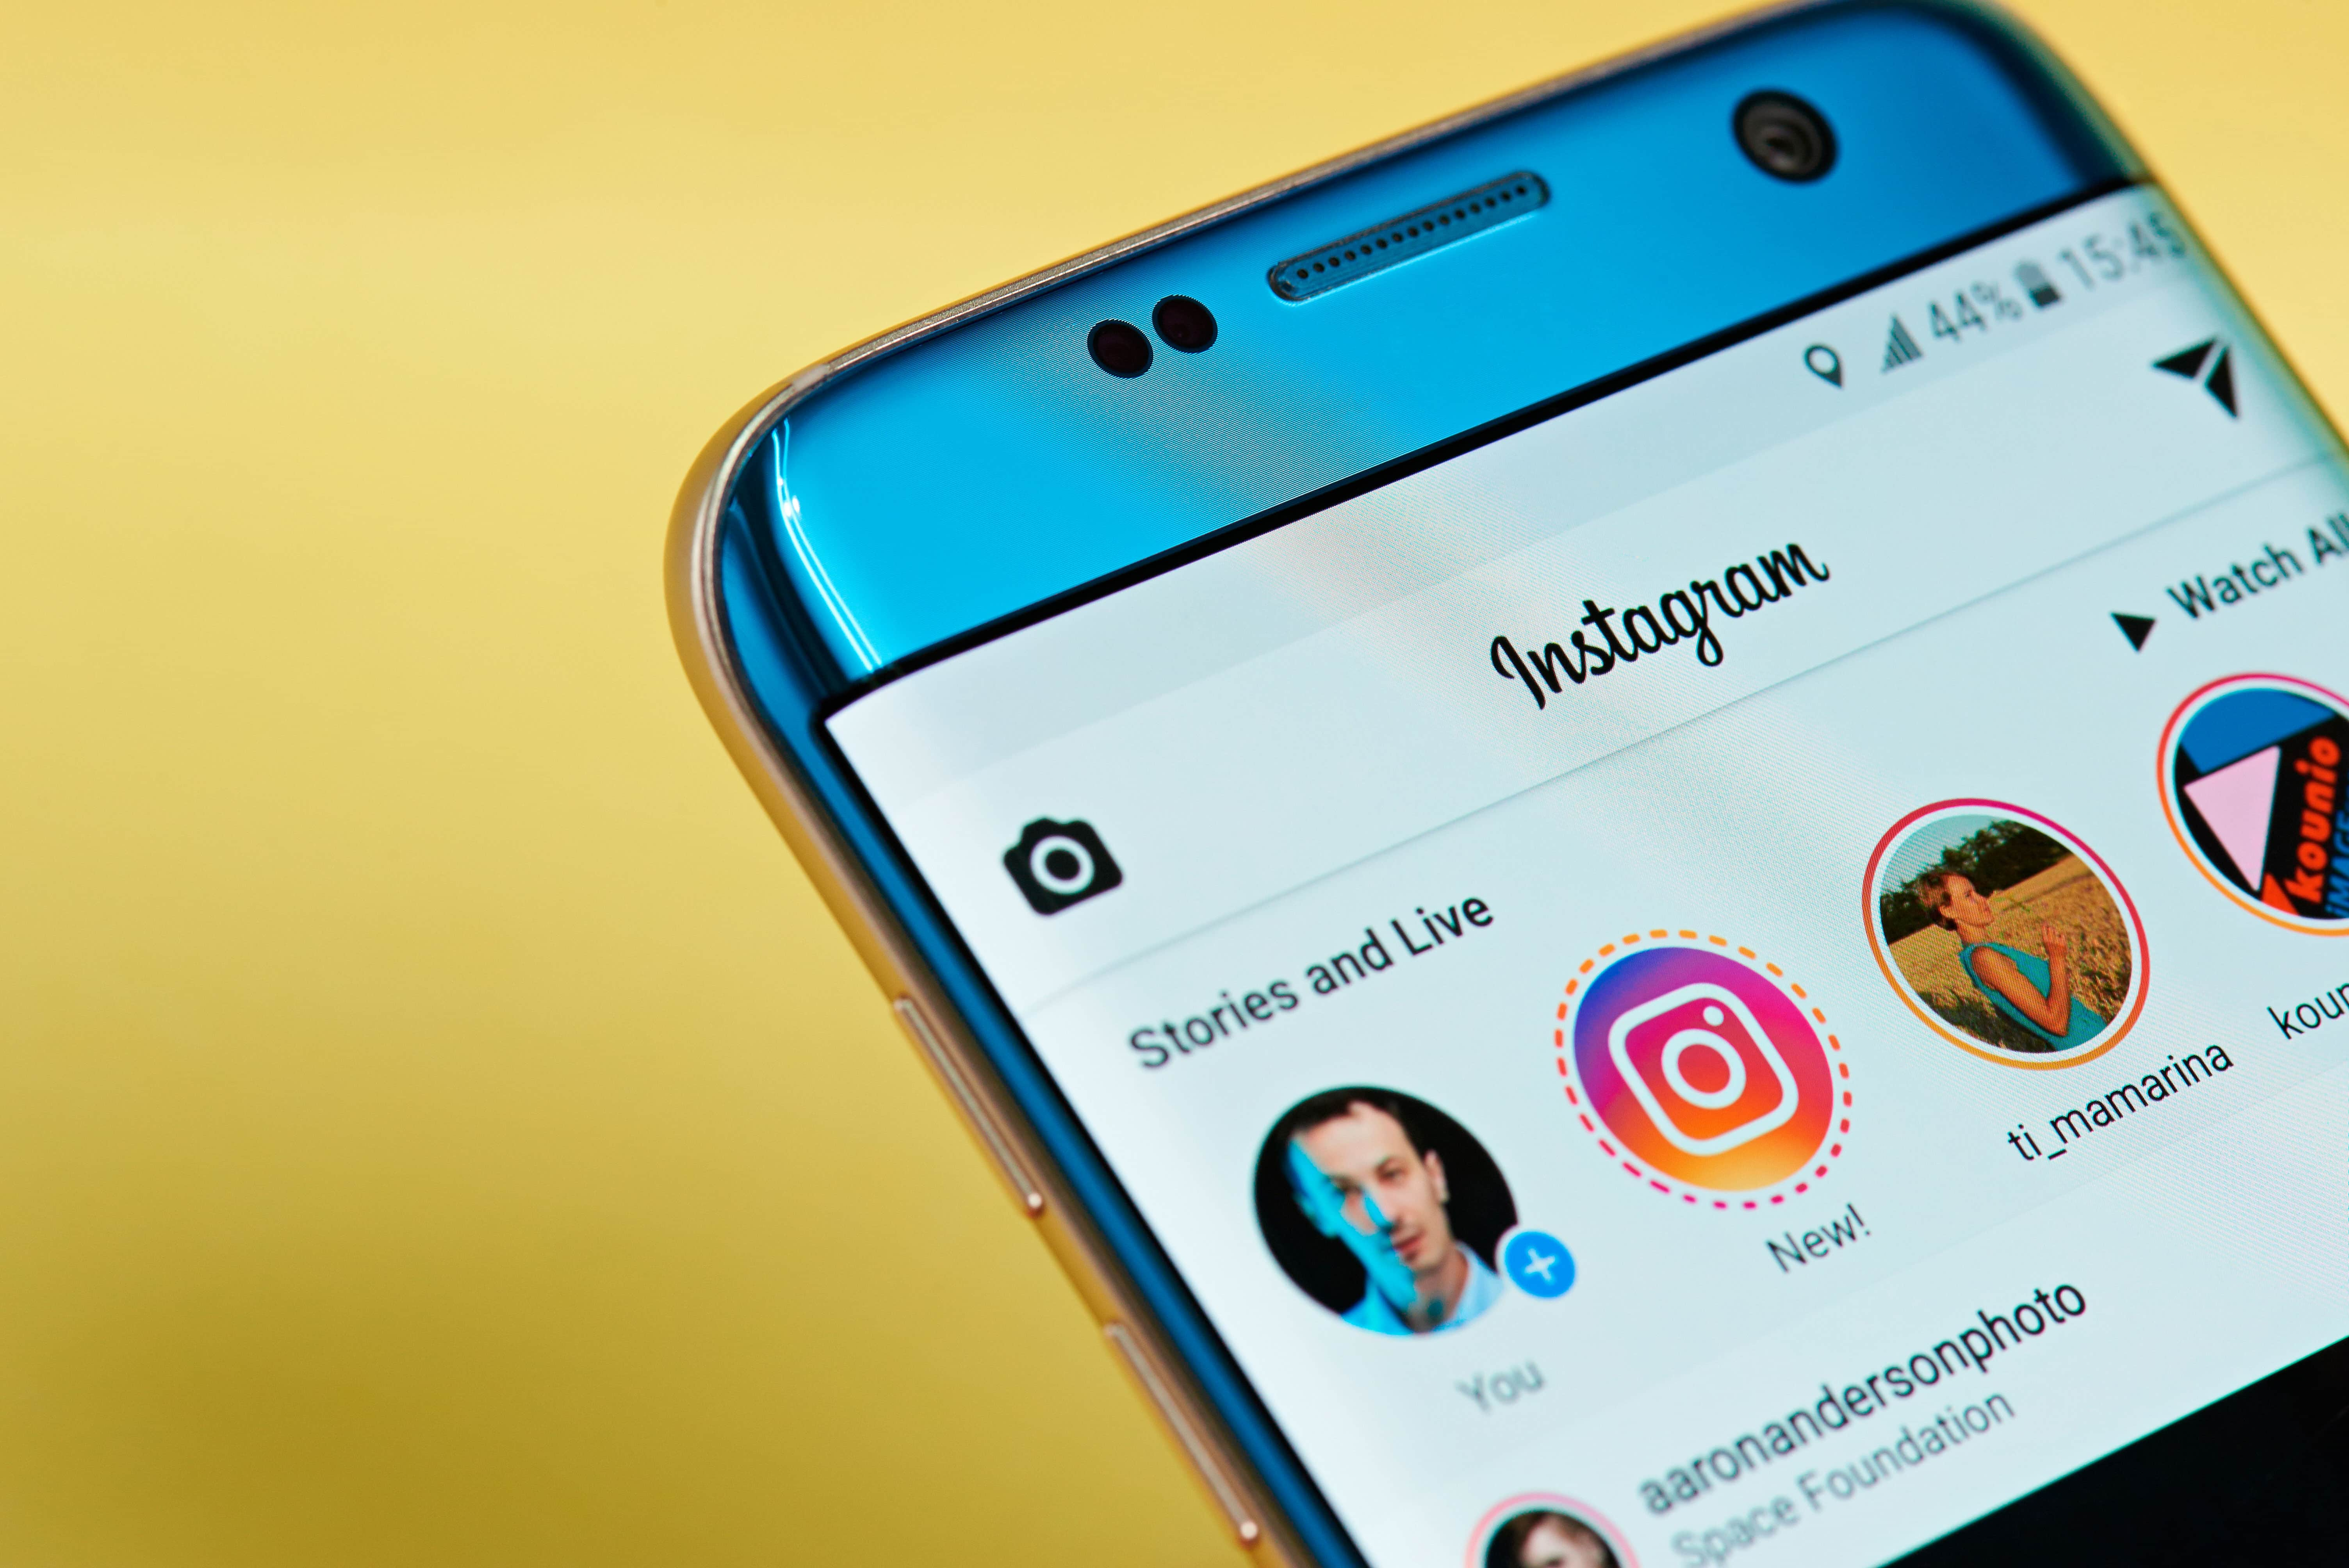 Come verificare un account Instagram in pochi passaggi 3